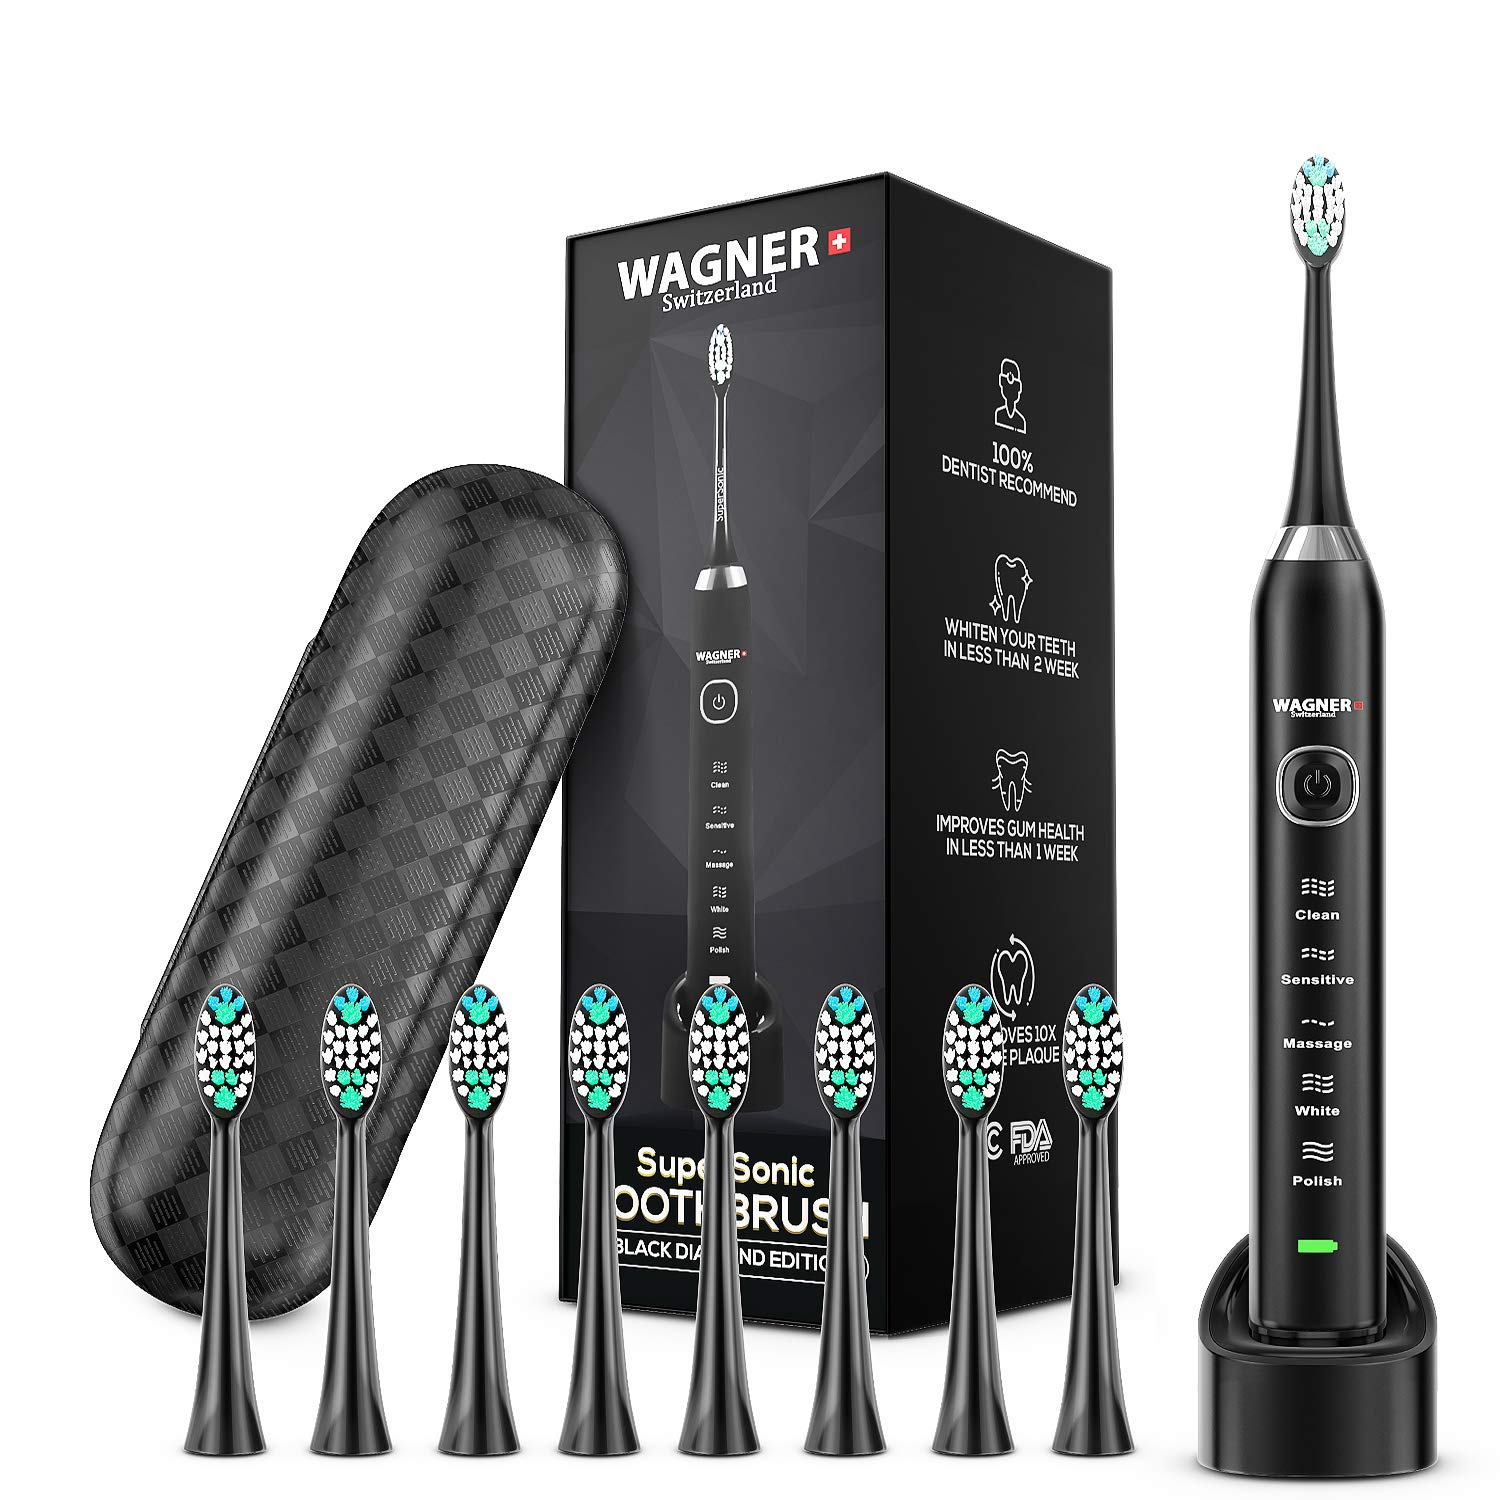 WAGNER Switzerland. ULTRA Whitening Toothbrush 8 DuPont Bristles SuperSonic 5 Modes w Smart Timer 48,000 VPM Wireless Premium Travel Case 100 Dentist Recommended Designed. Black